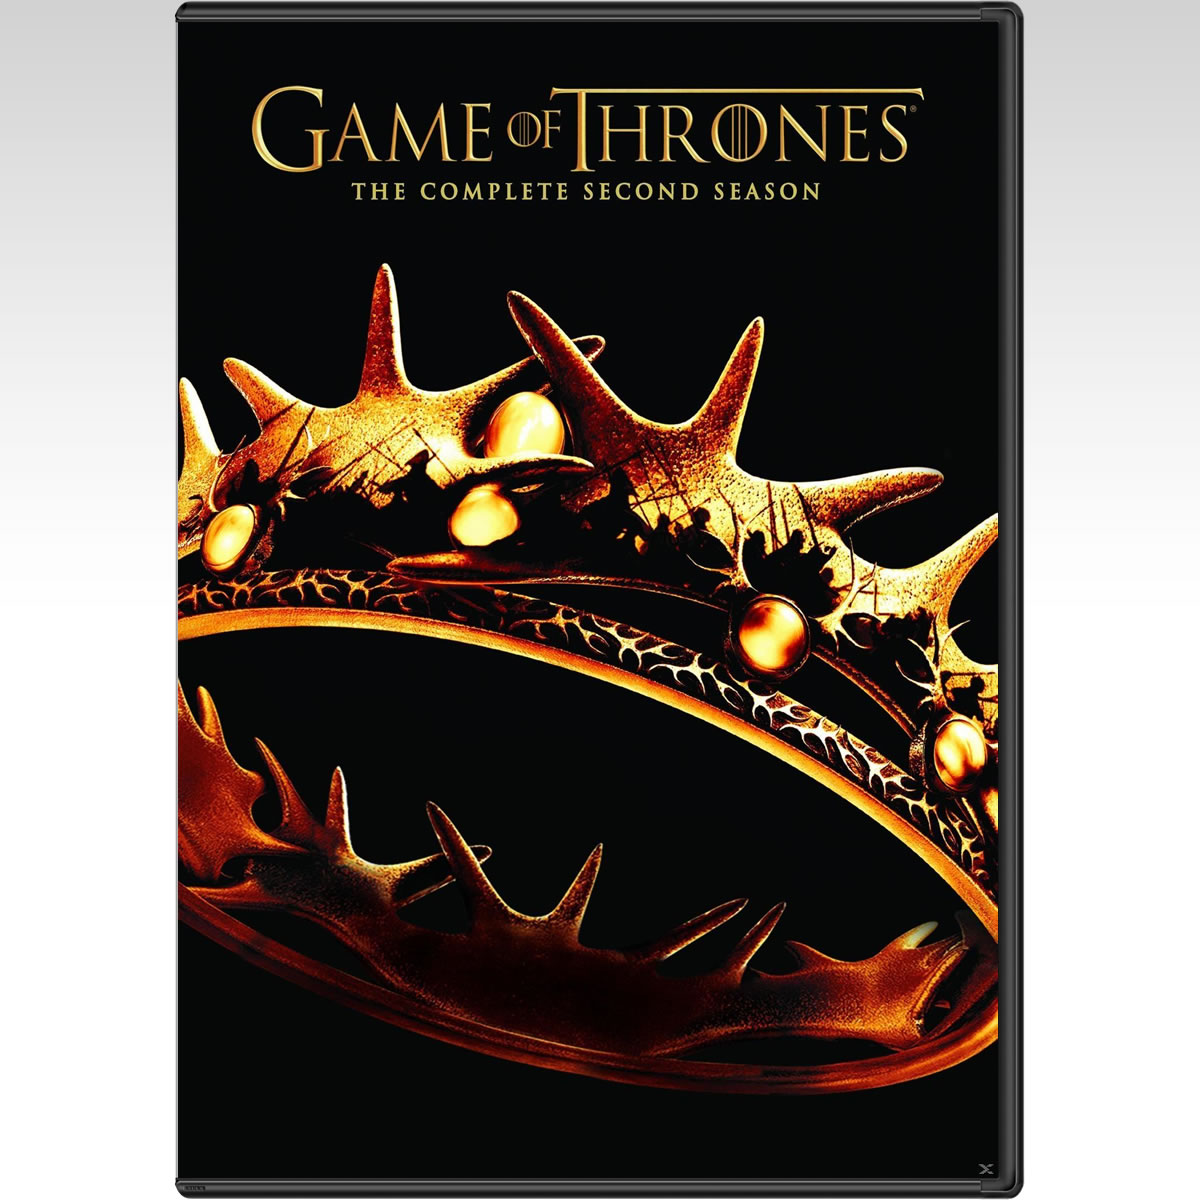 GAME OF THRONES: THE COMPLETE 2nd SEASON - �������� ��� ���������: 2� �������� [��������] (8 DVDs)